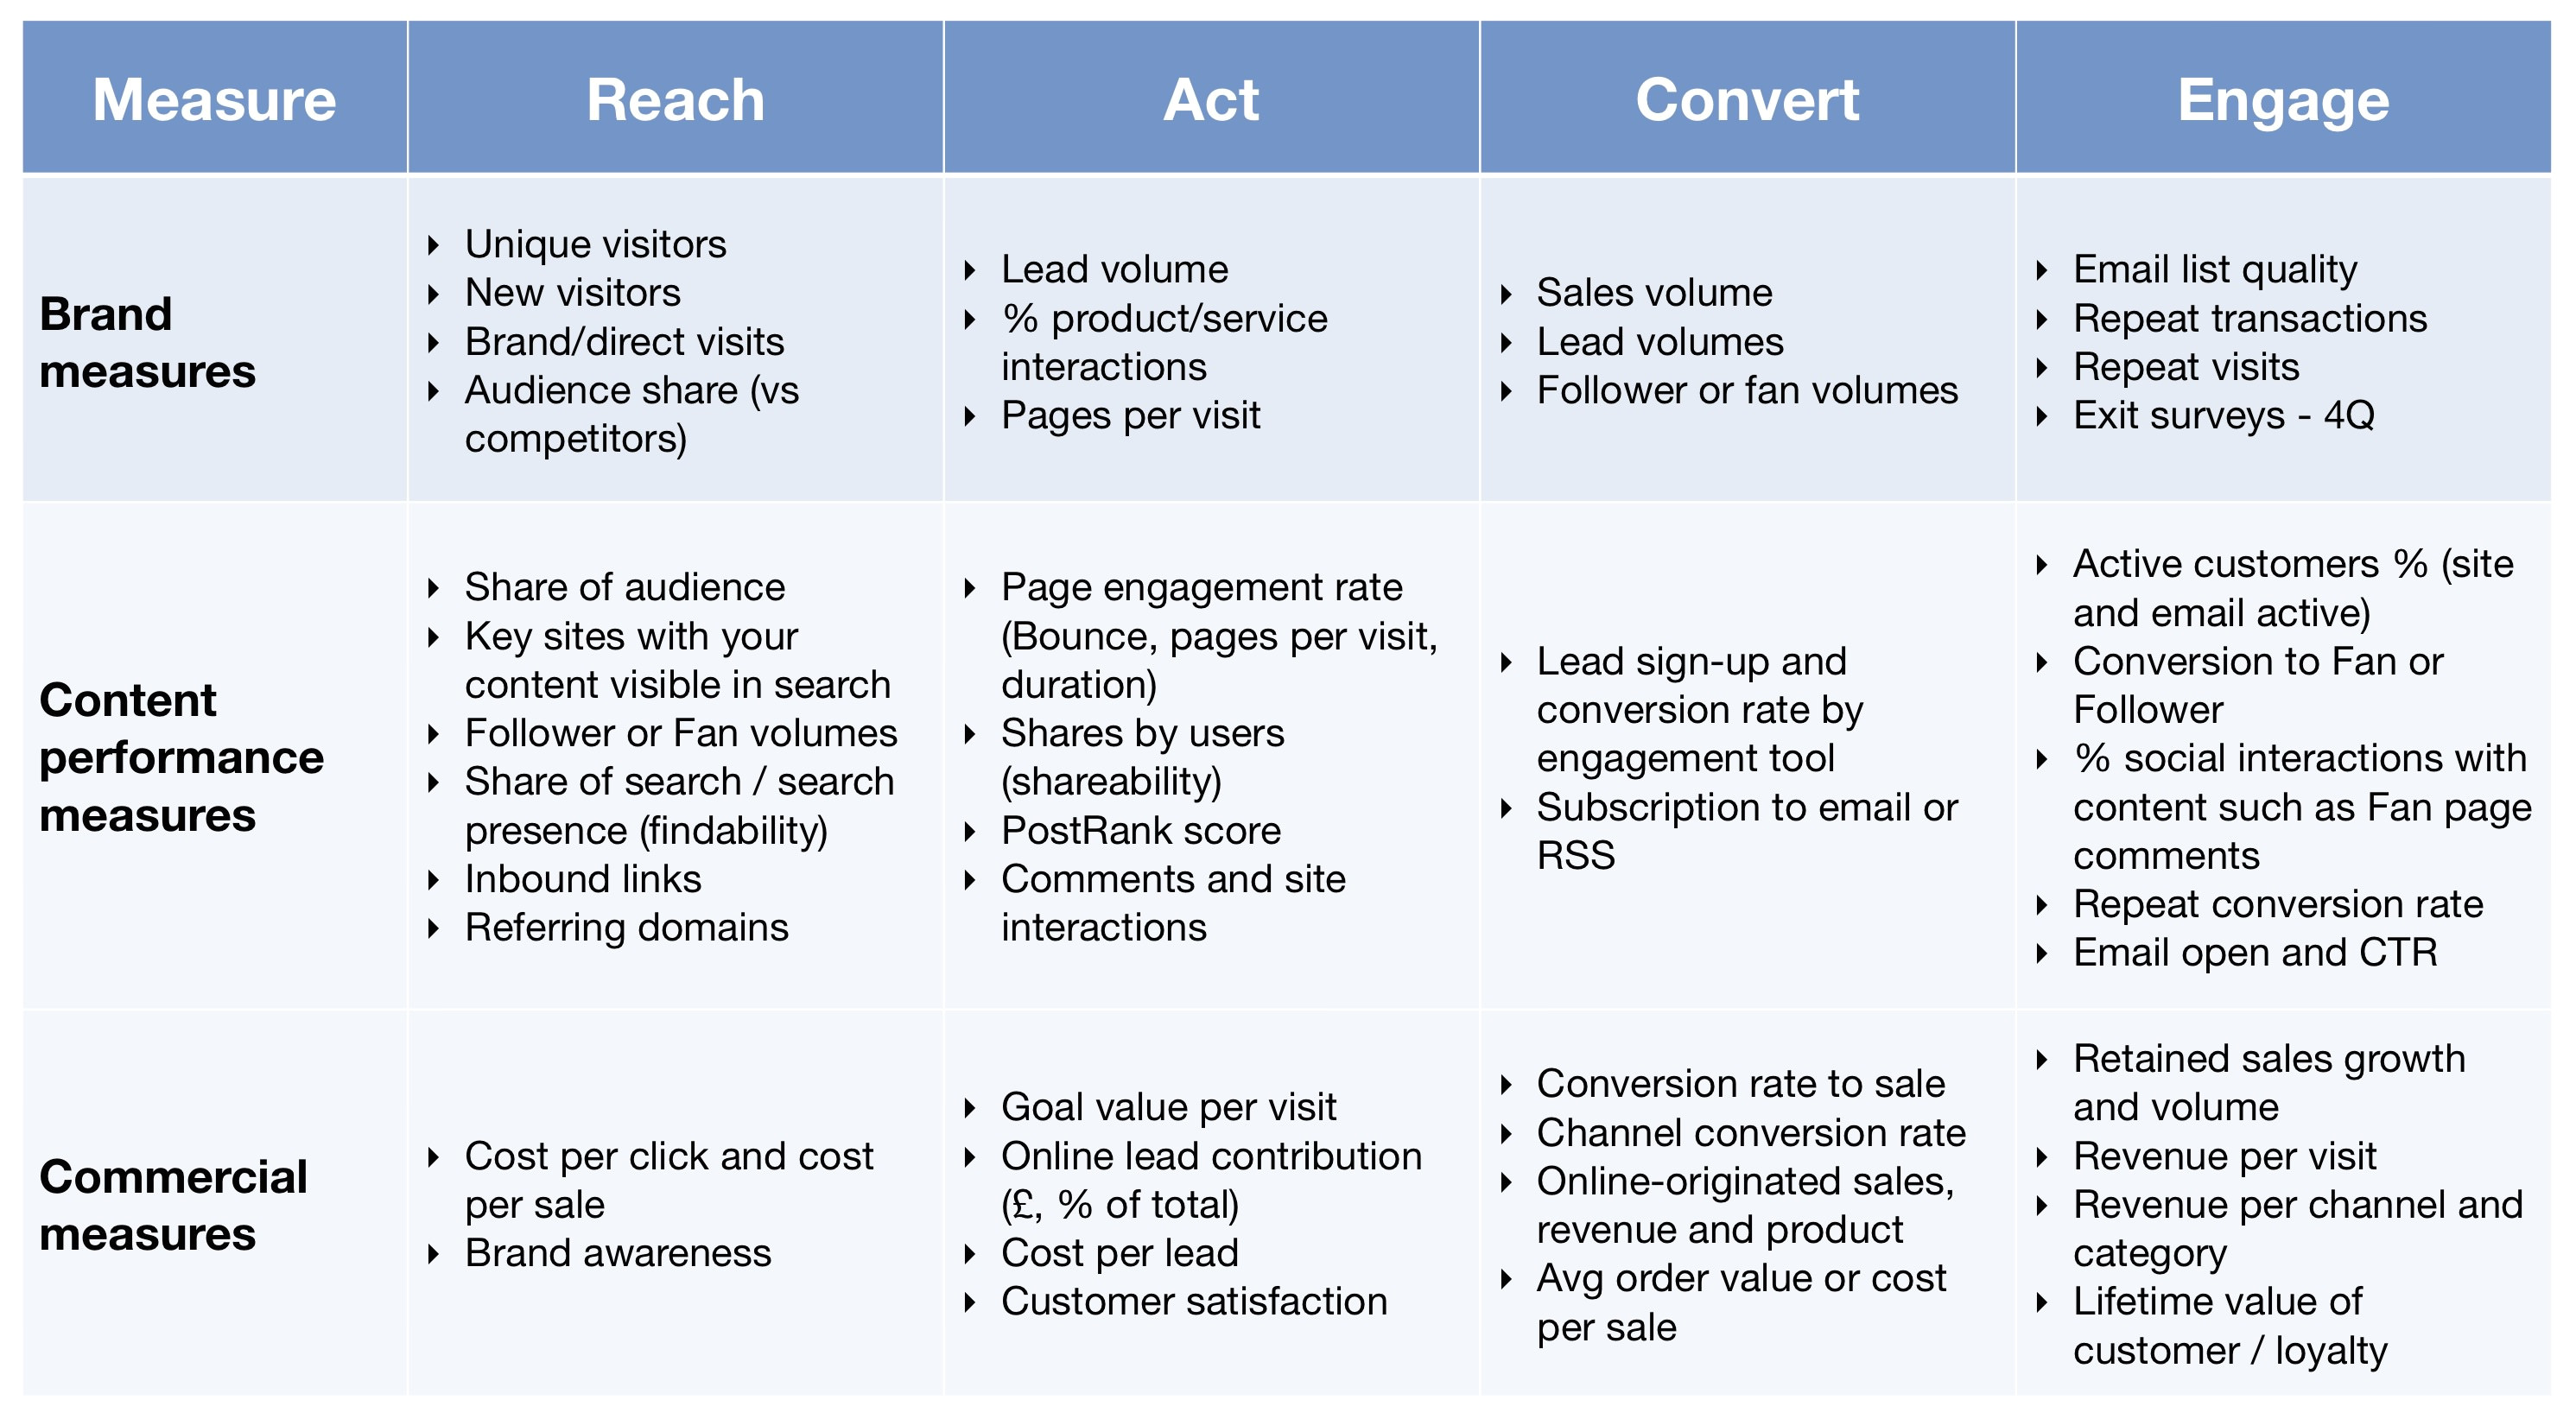 Kpi Measurement Template Kpis for Measuring Content Marketing Roi Smart Insights